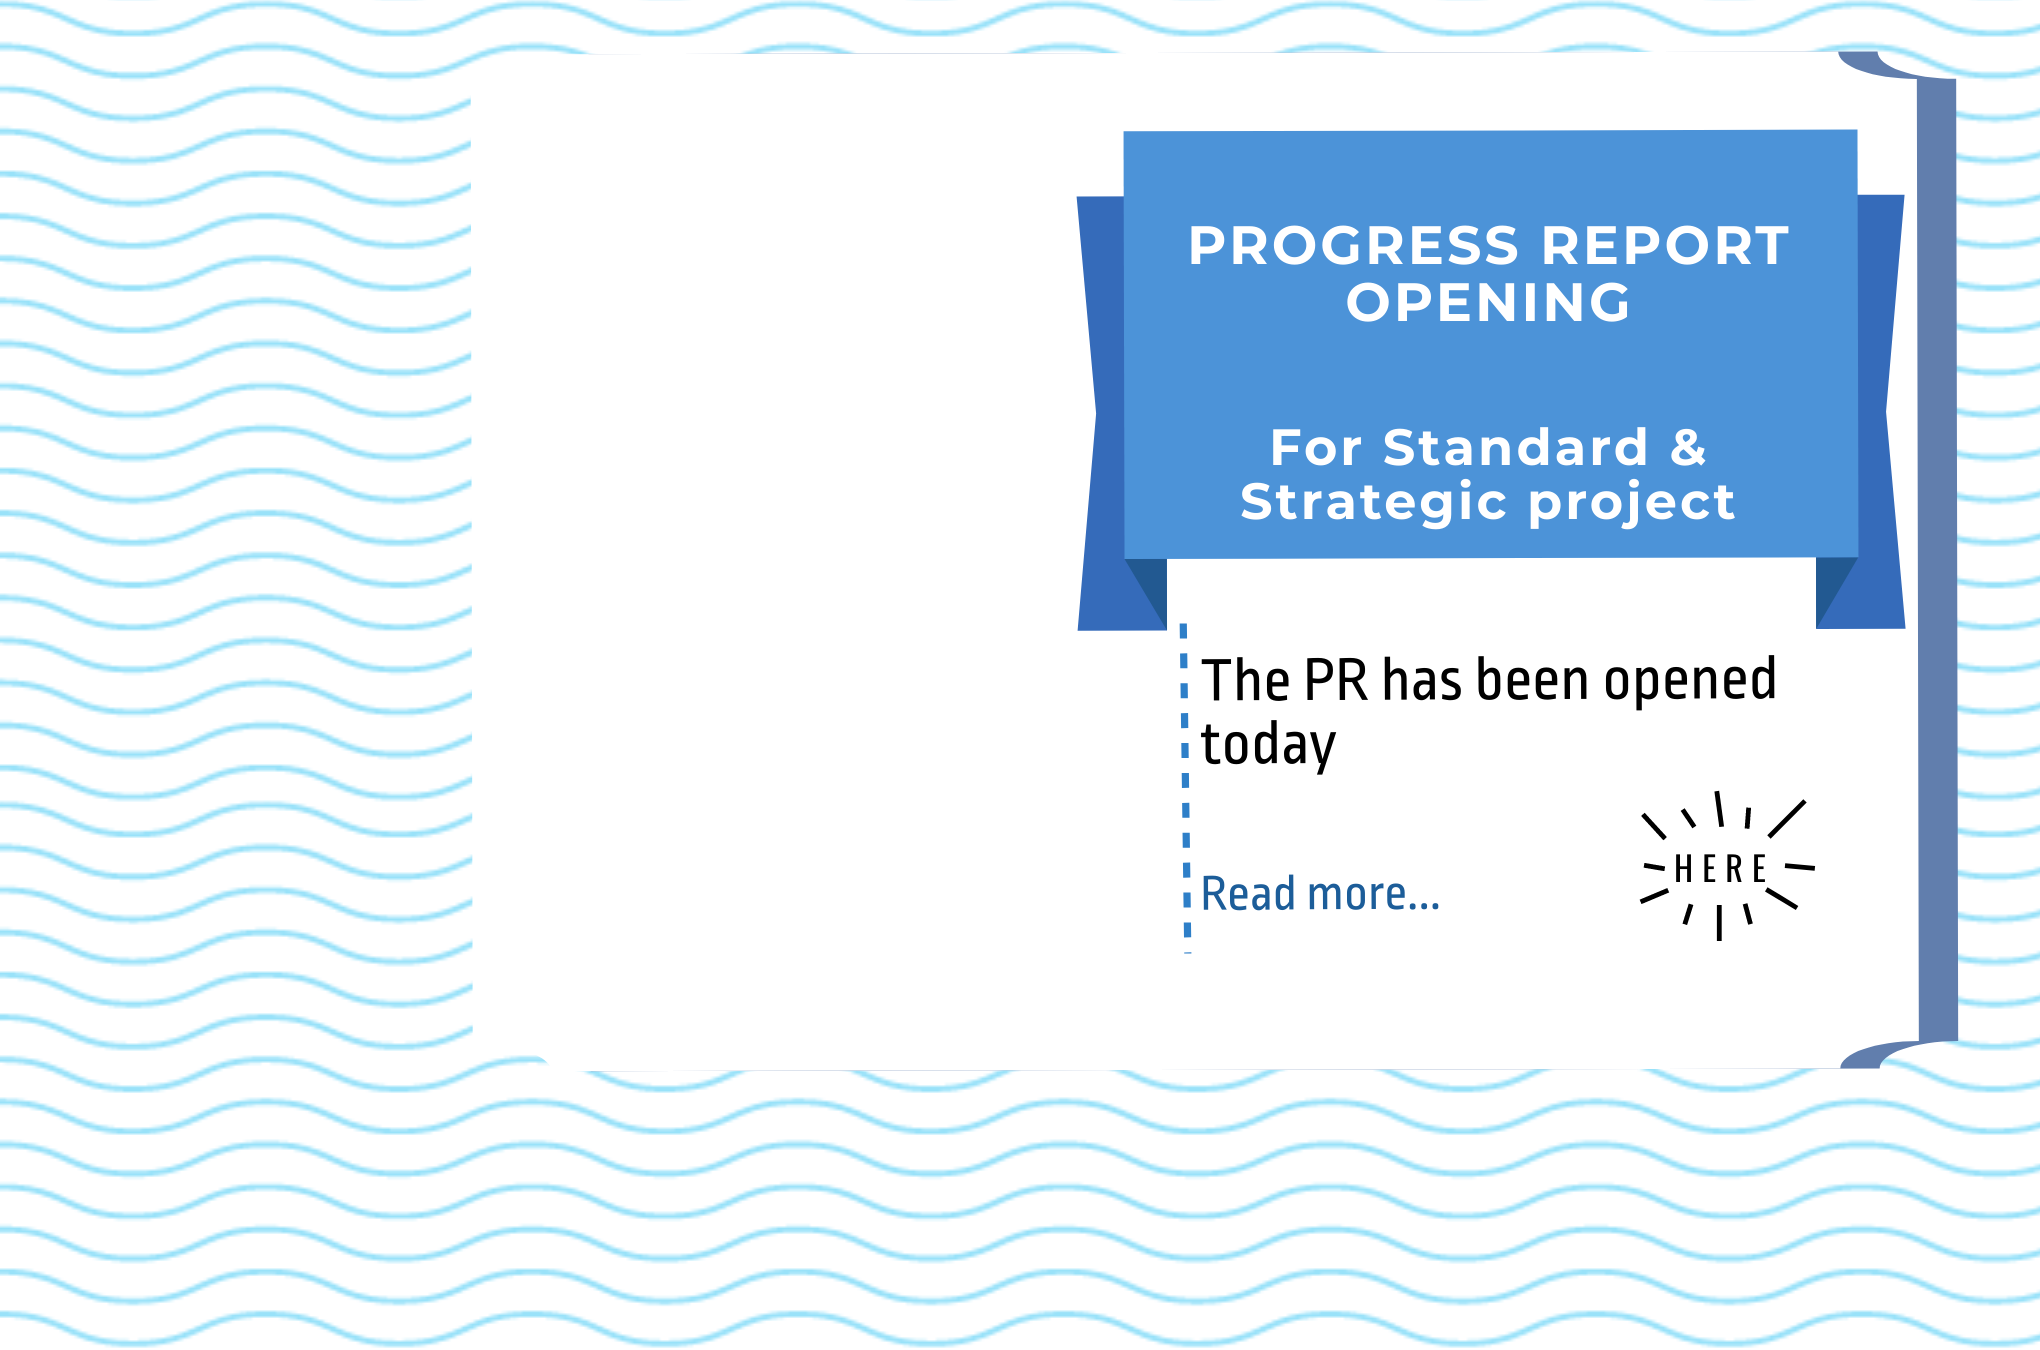 Progress Report: opened for Standard and Strategic projects